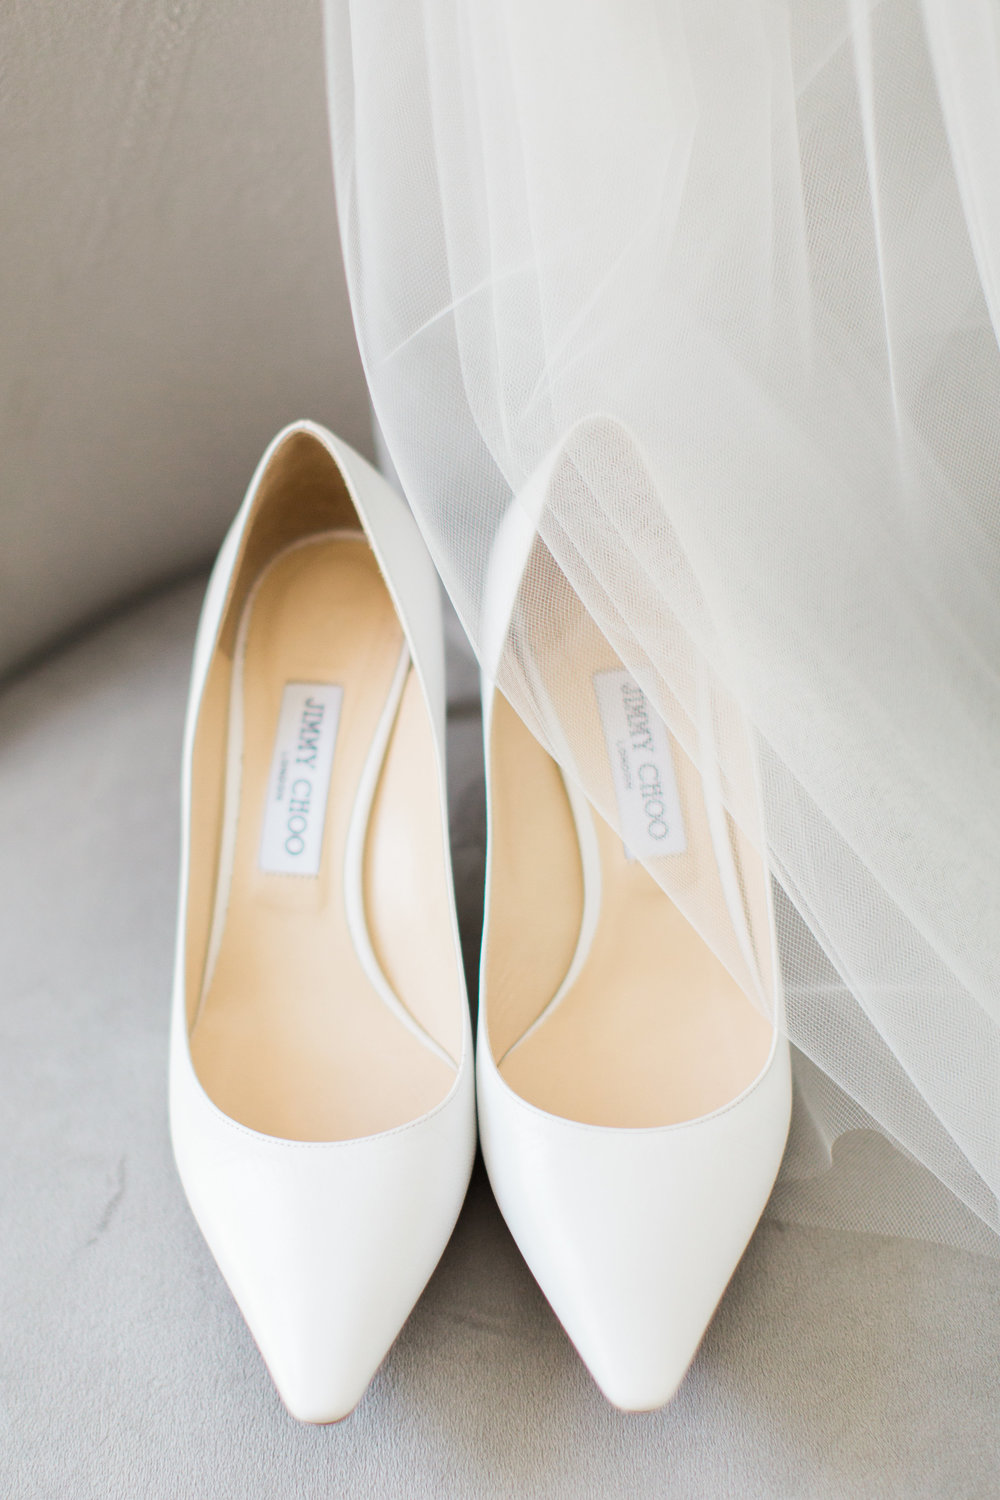 5. Bride Shoes & Veil.jpg